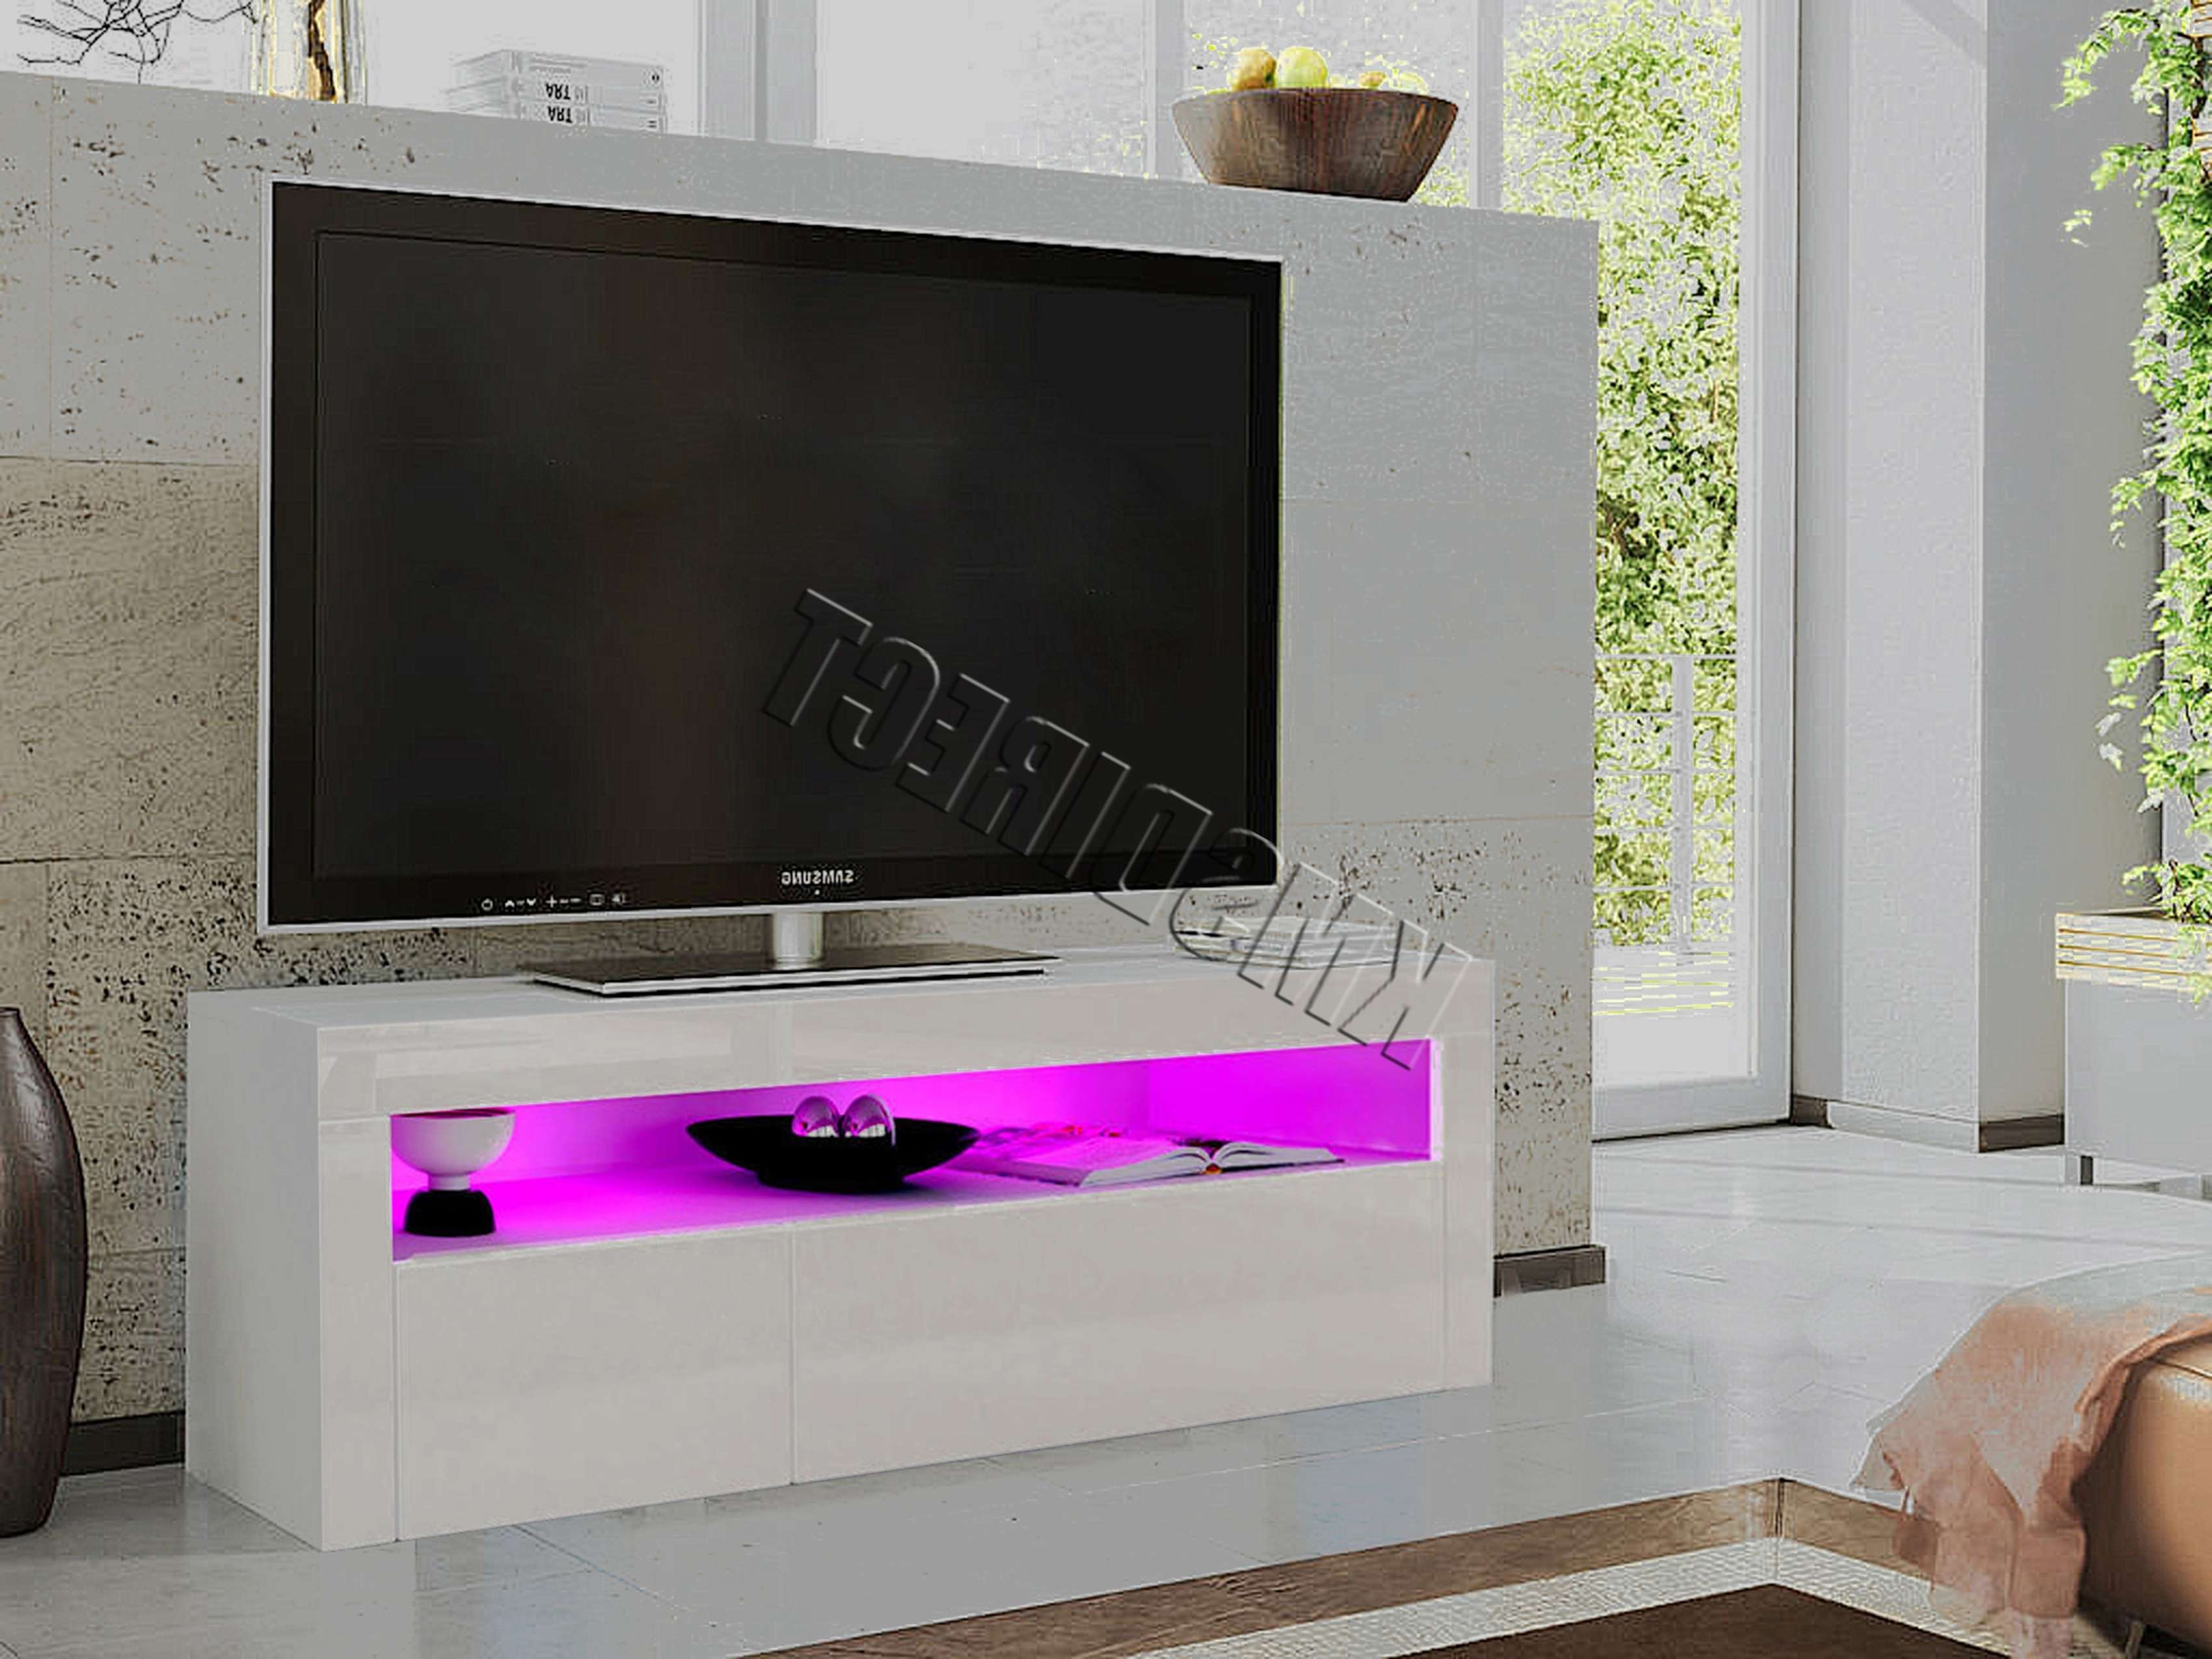 Foxhunter Modern High Gloss Matt Tv Cabinet Unit Stand White Rgb With Regard To White High Gloss Tv Stands (View 8 of 20)